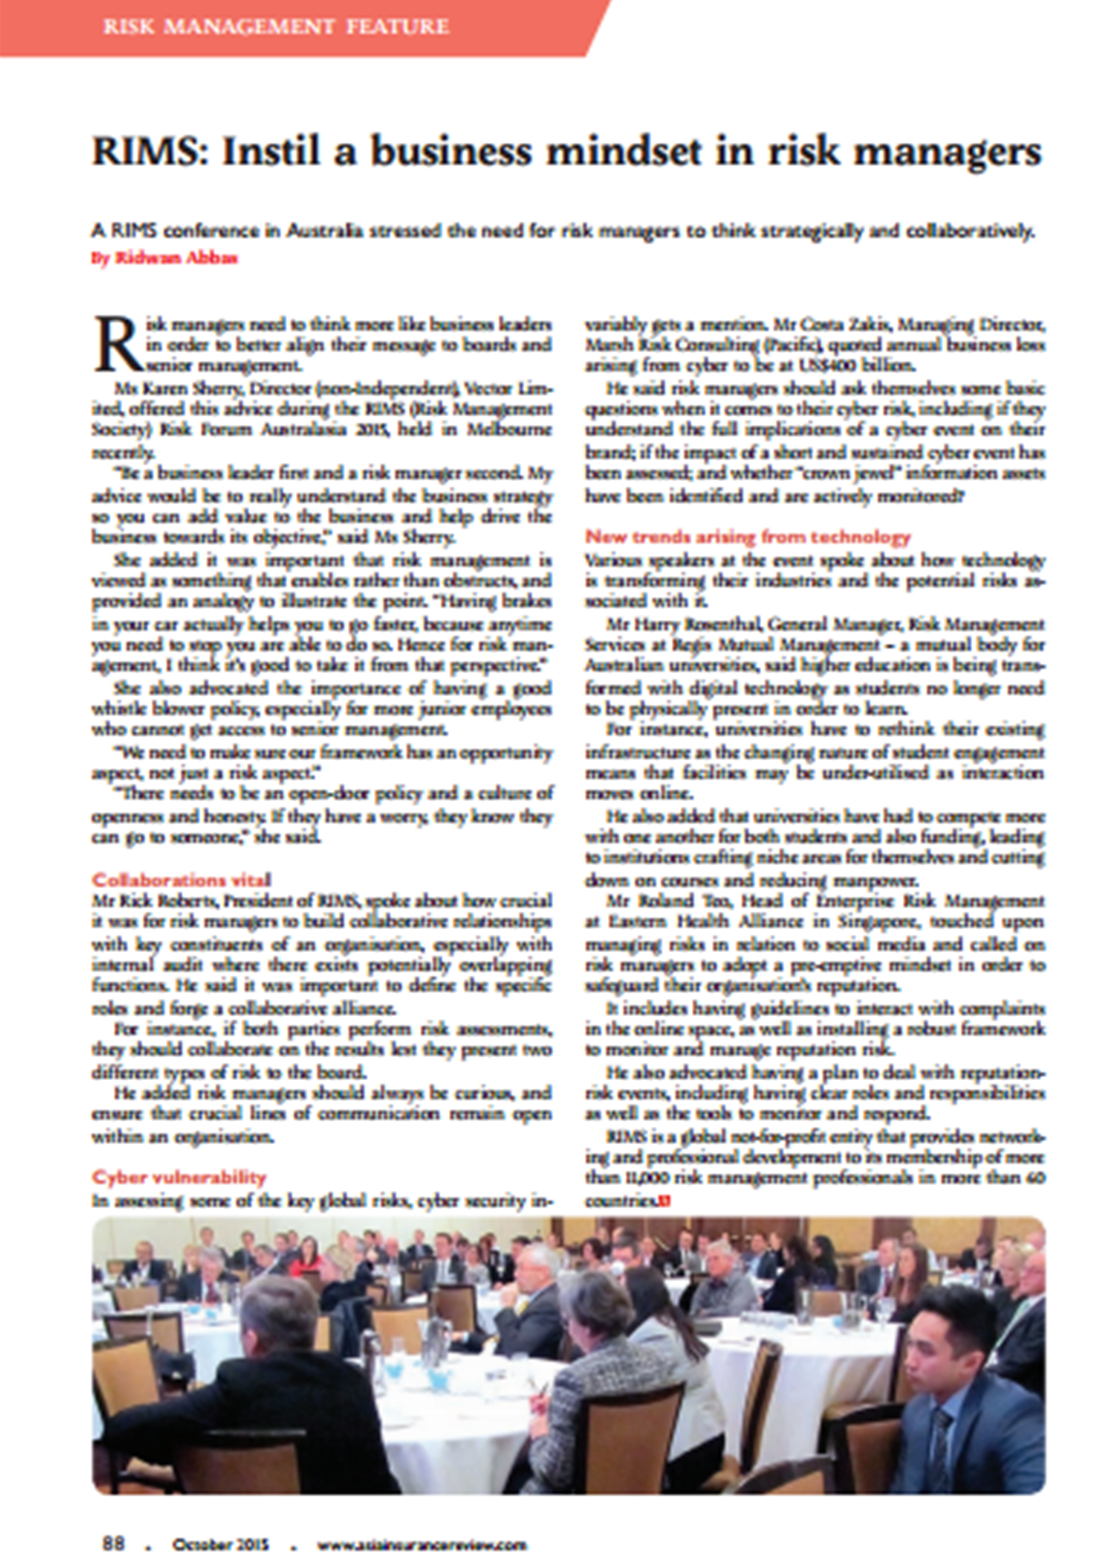 Coso 2016 enterprise risk management aligning risk with strategy - Rims Risk Management Society Risk Forum Australasia 2015 Held In Melbourne Featured By Asia Insurance Review